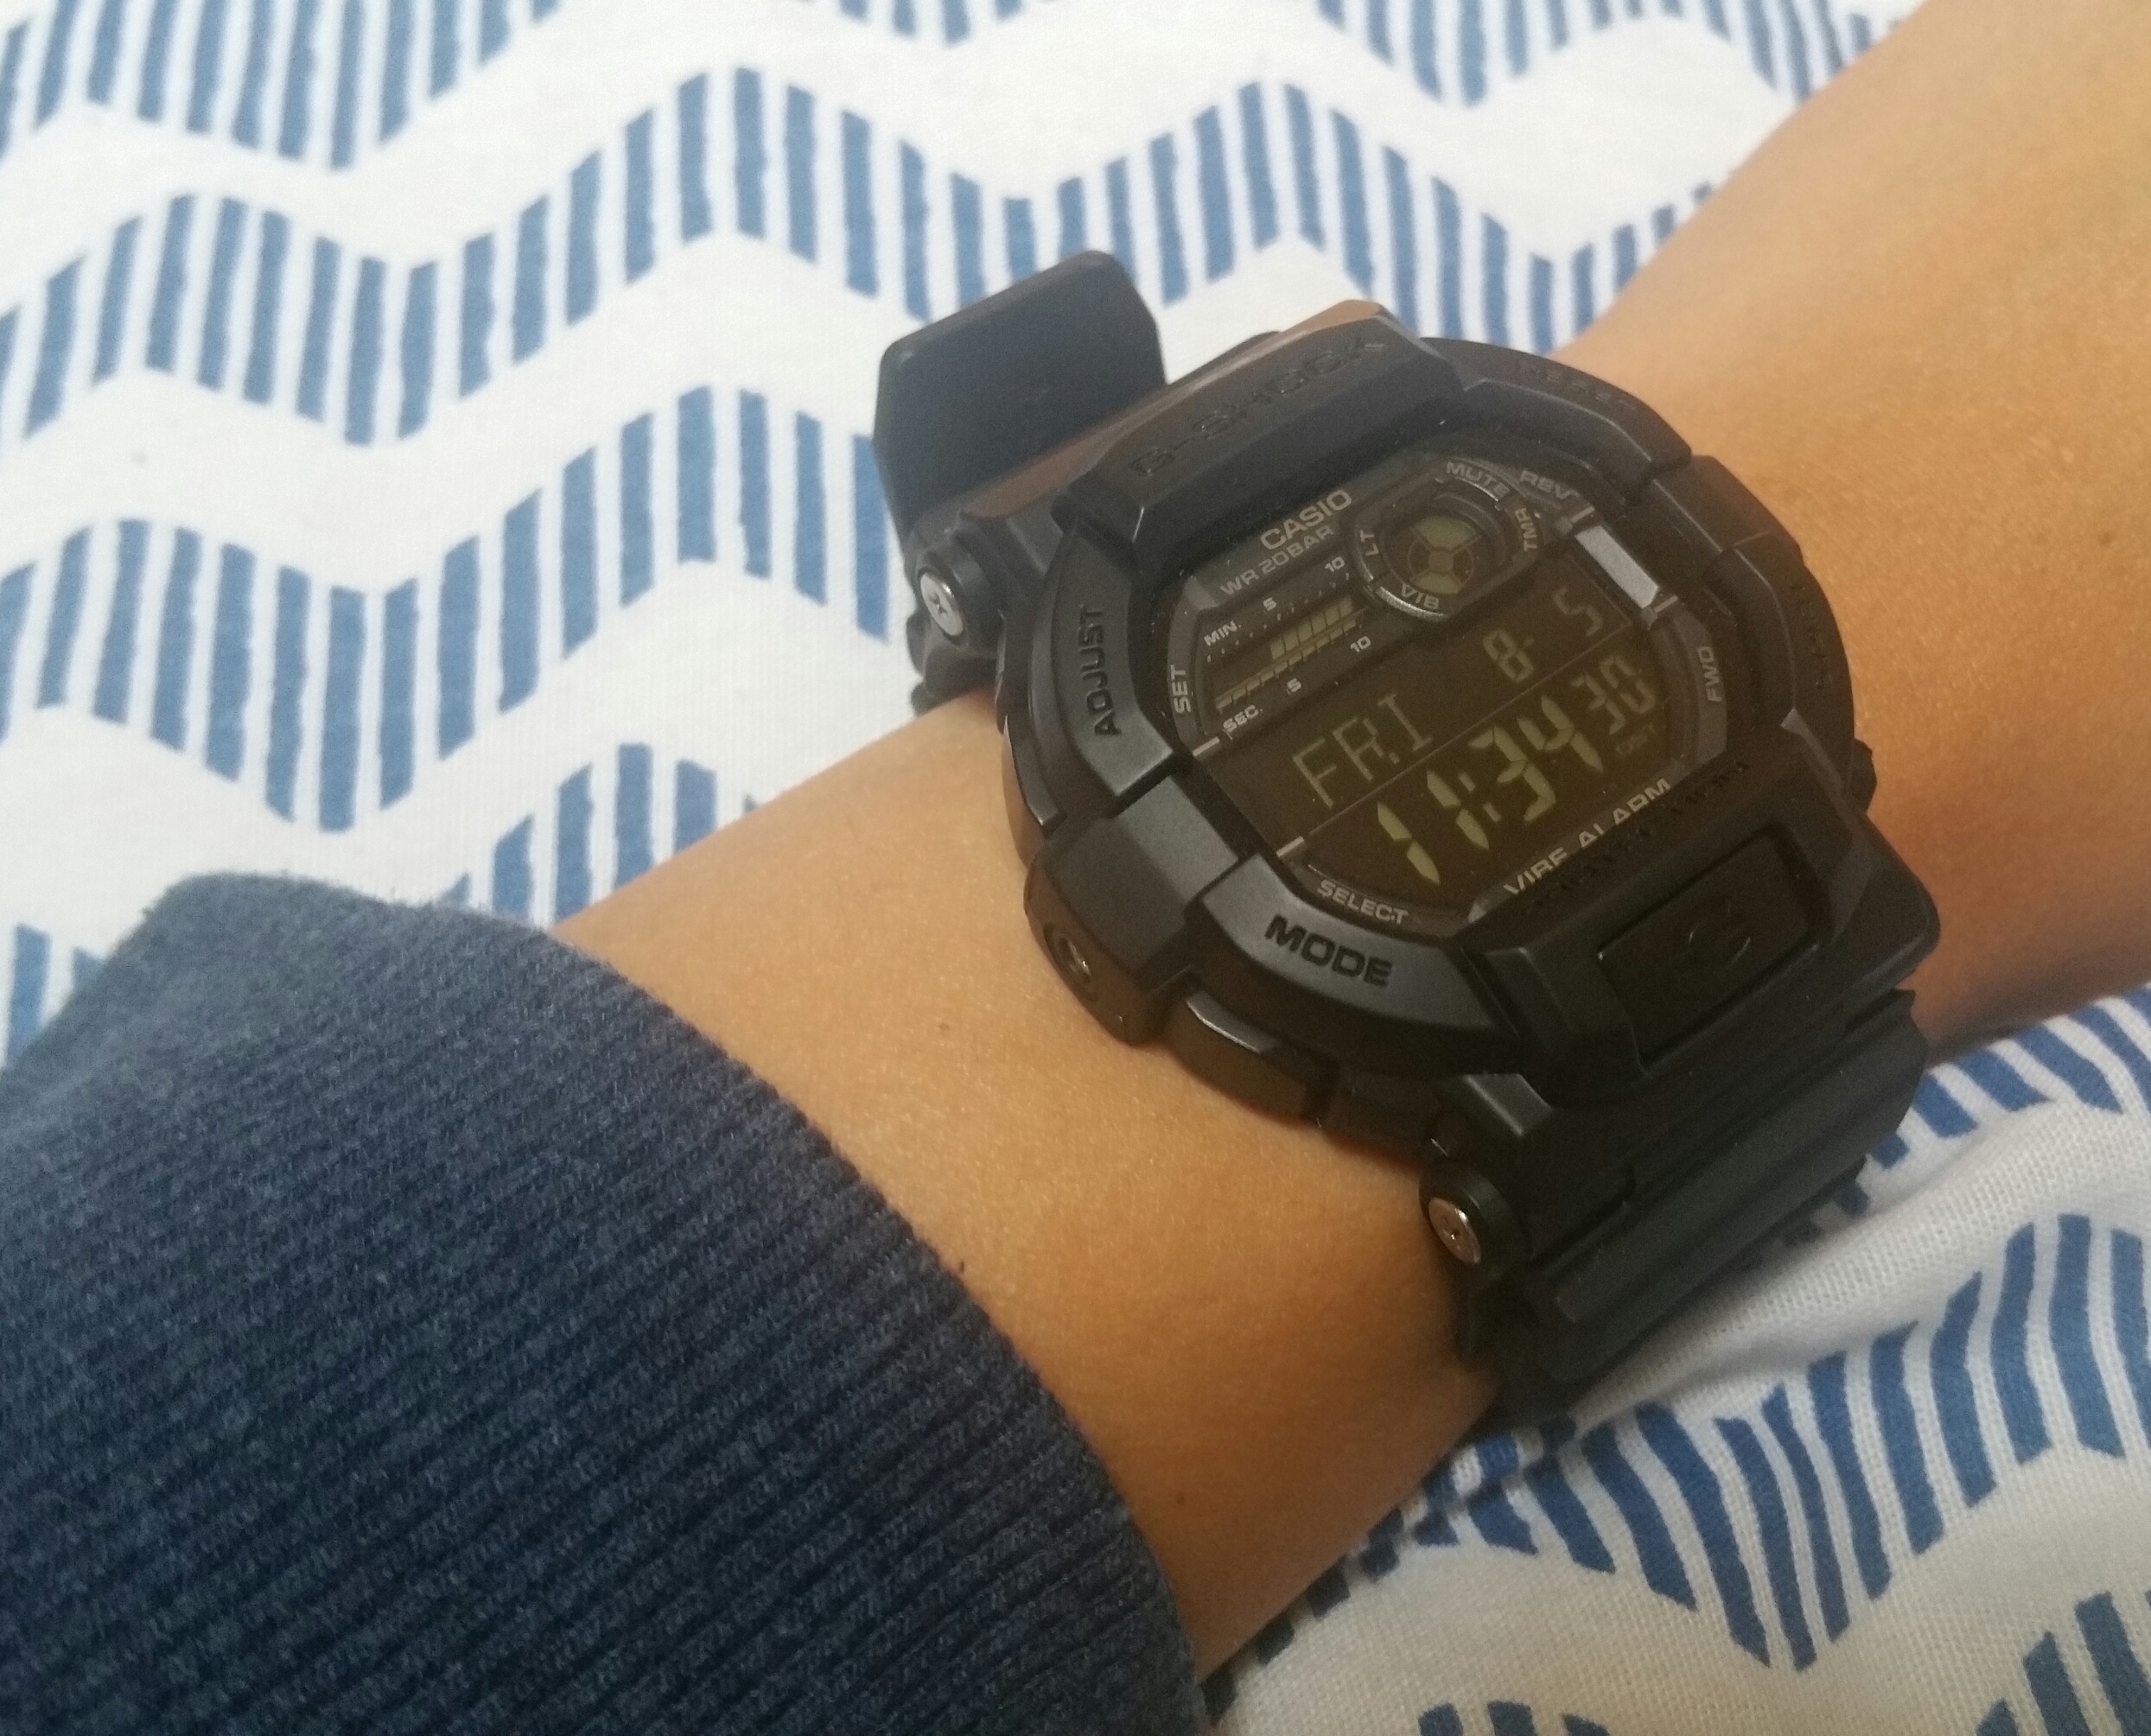 c24e23085 A great G Shock watch thats full of practical features. This watch is my  first G Shock watch and Im glad I chosen this one over others.